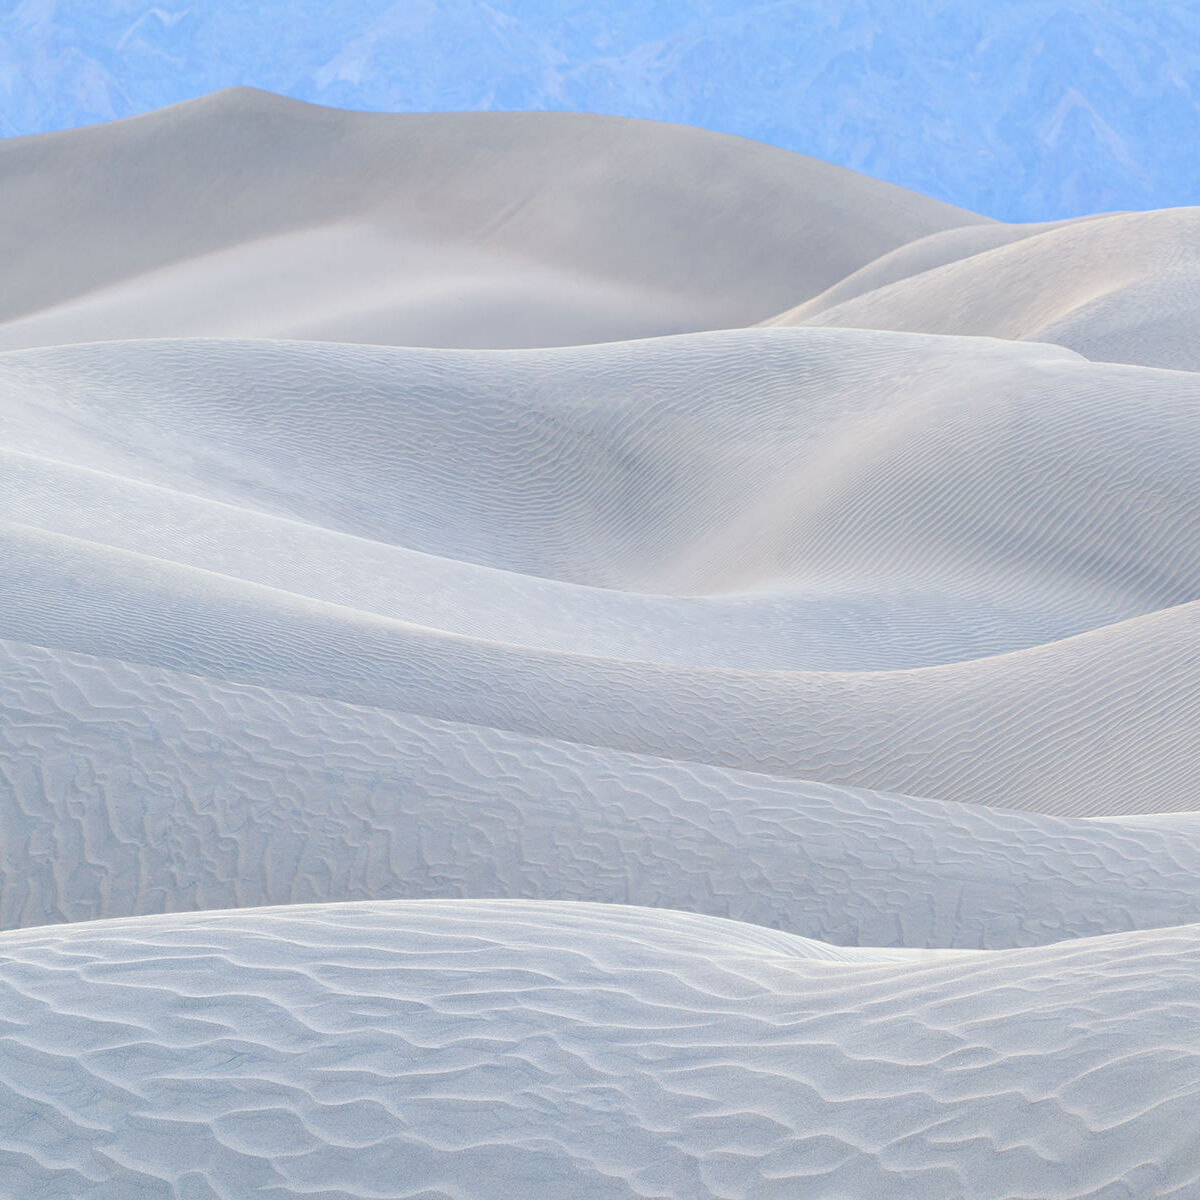 A photograph of the Mesquite Sand Dunes in Death Valley titled White Satin.